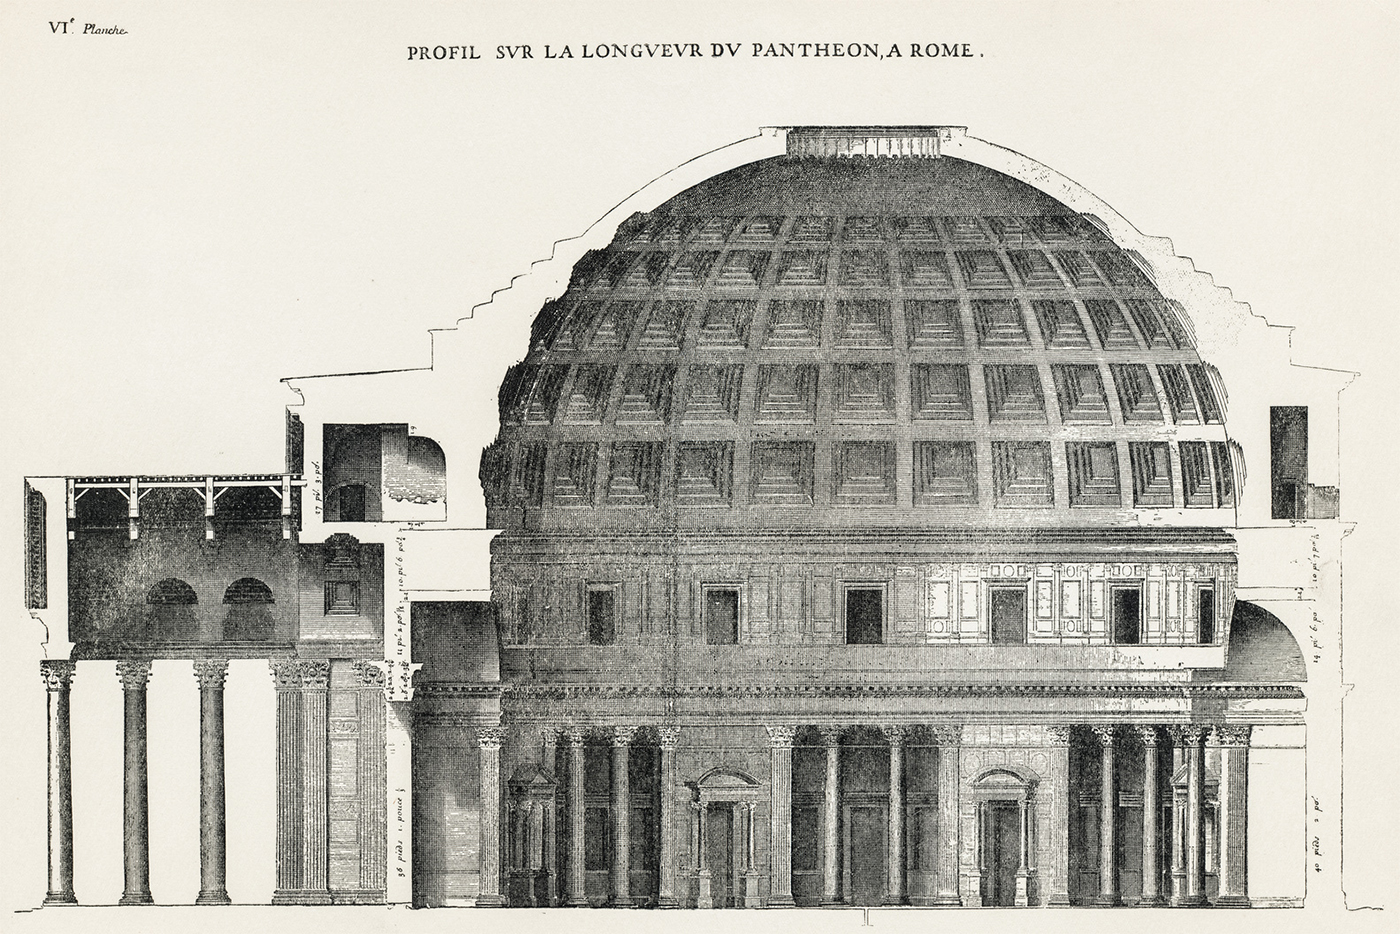 A section of the project for the Pantheon